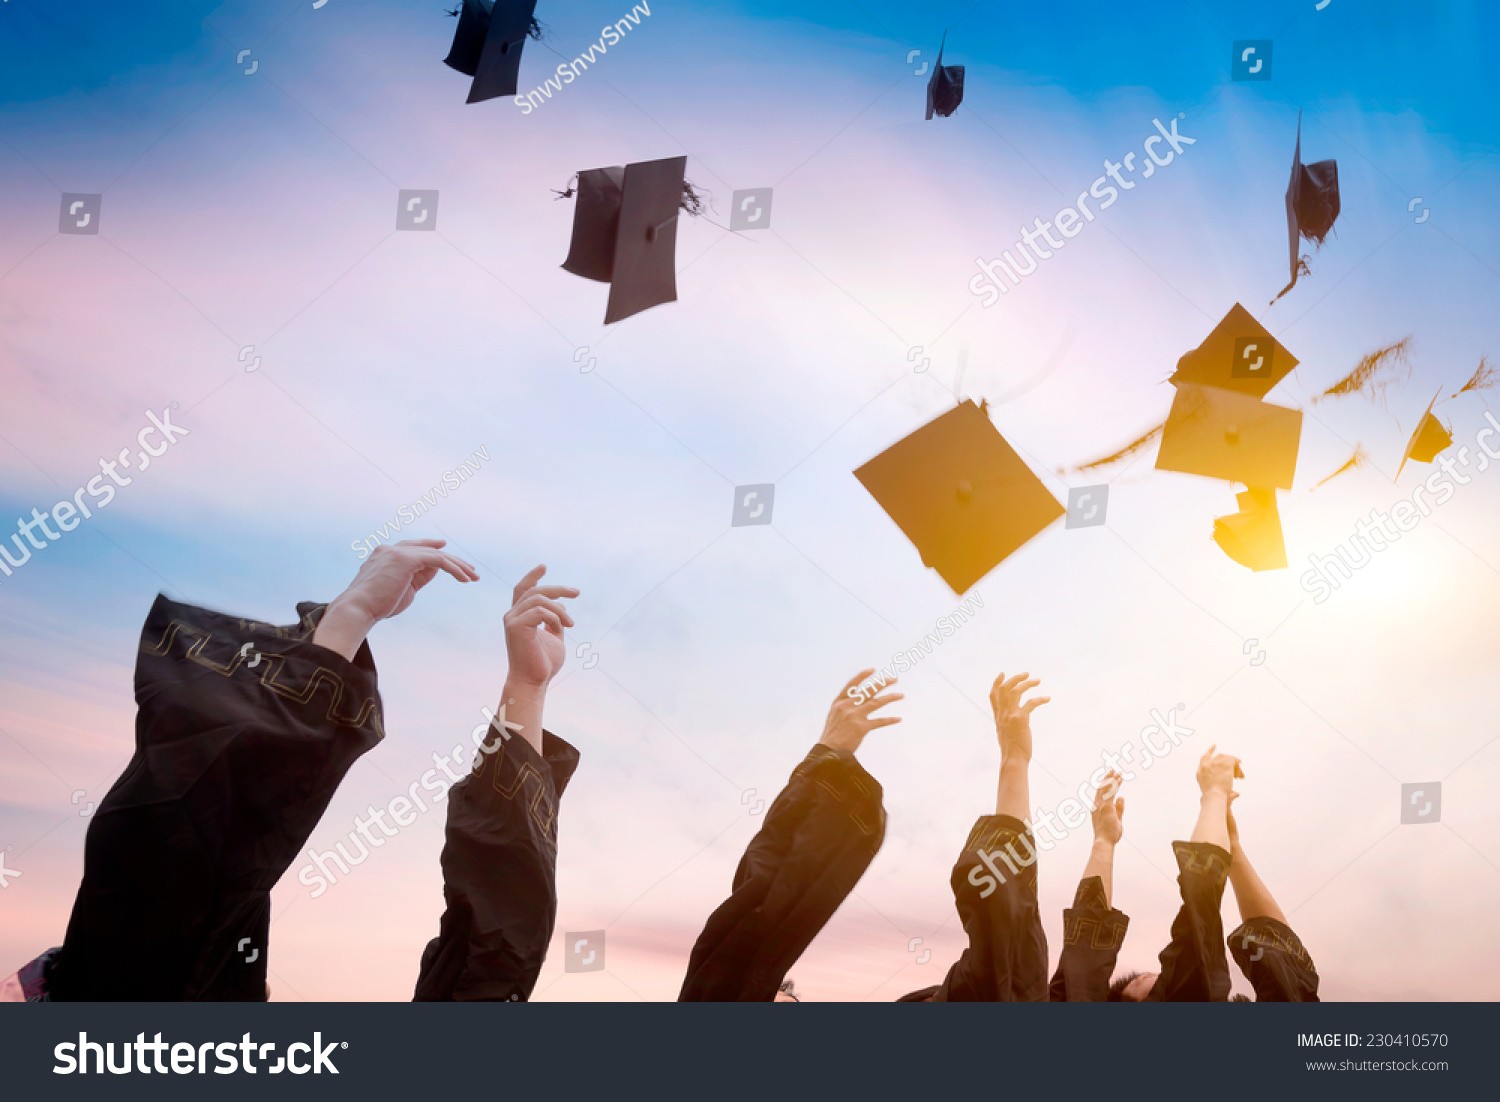 Graduates Throwing Graduation Hats Air Stock Photo ...